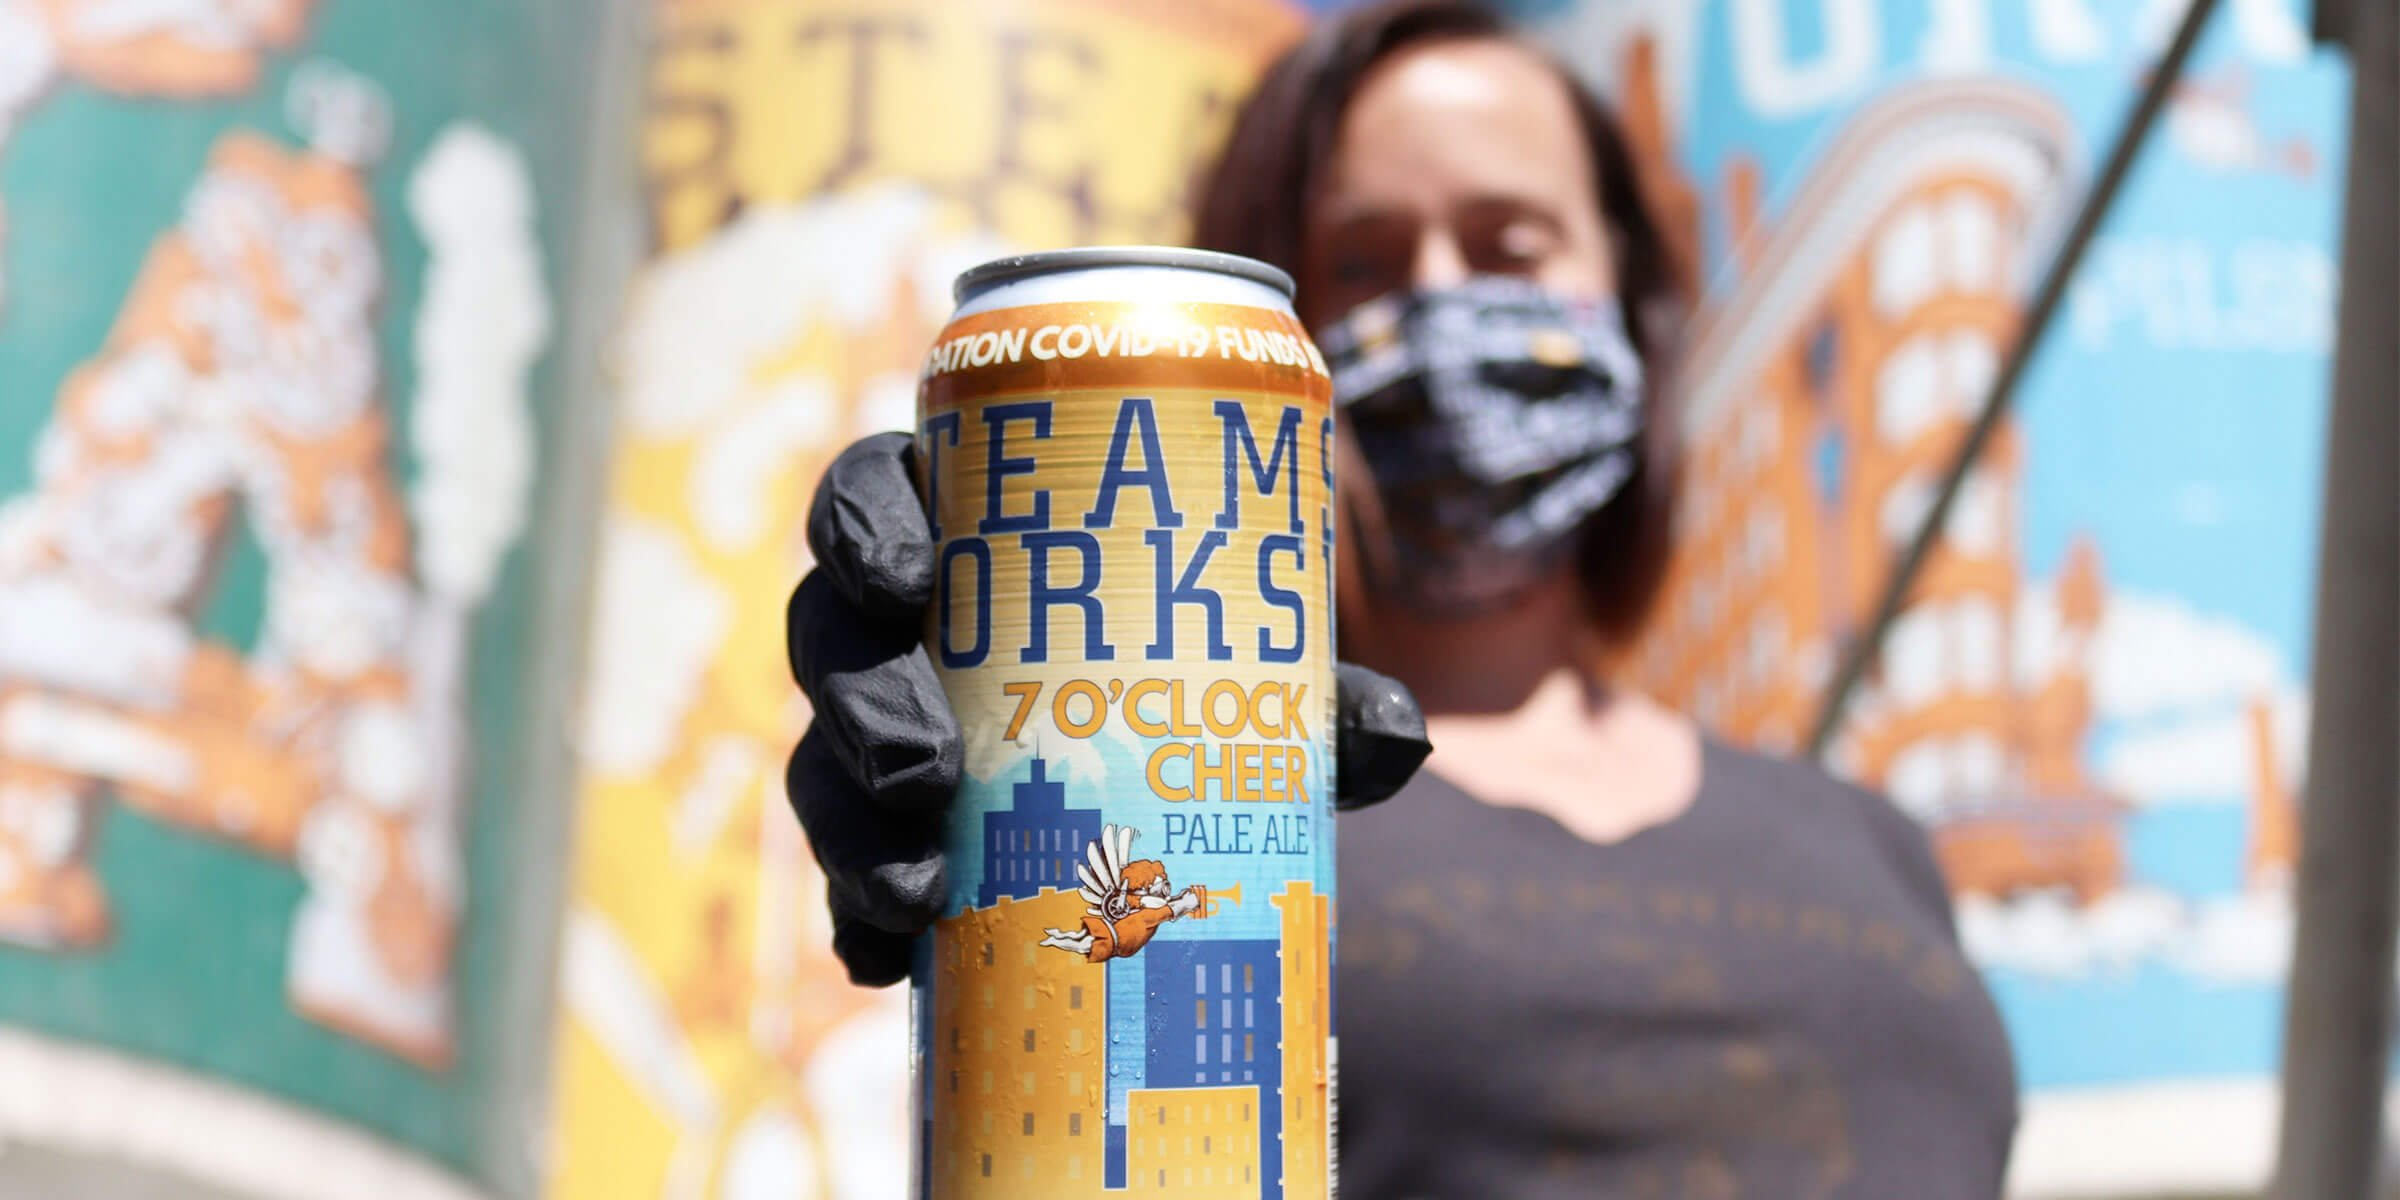 Steamworks Brewing Company released the 7 O'clock Cheer Pale Ale, inspired by the city's unwavering show of support for frontline workers every evening at 7 PM.